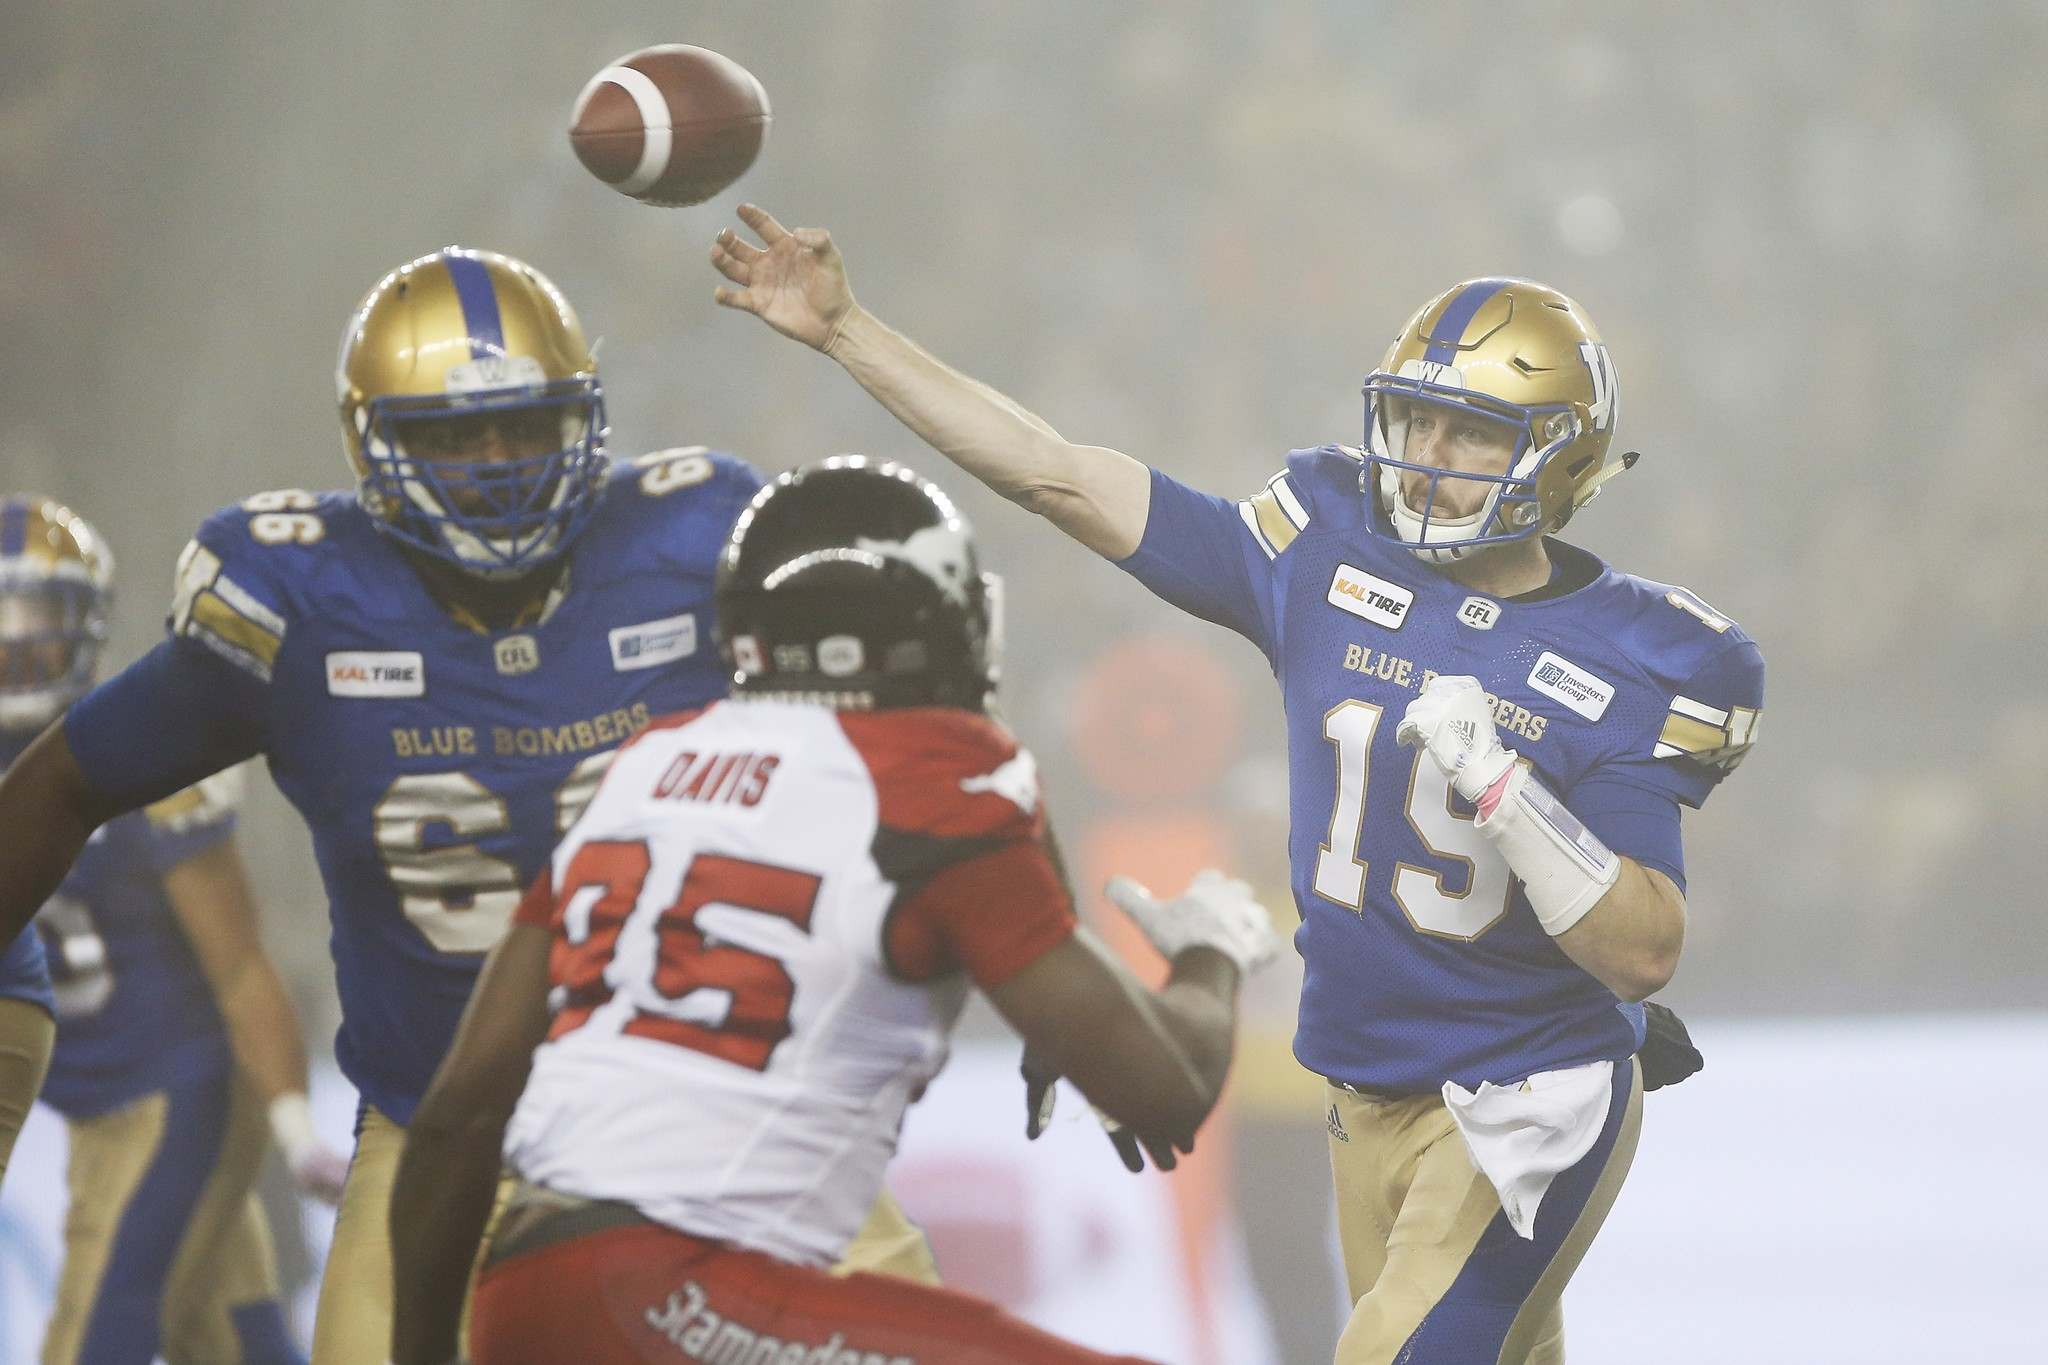 Bombers quarterback Matt Nichols throws in the fog against the Stampeders during Friday&rsquo;s game in Winnipeg. JOHN WOODS / THE CANADIAN PRESS</p></p>